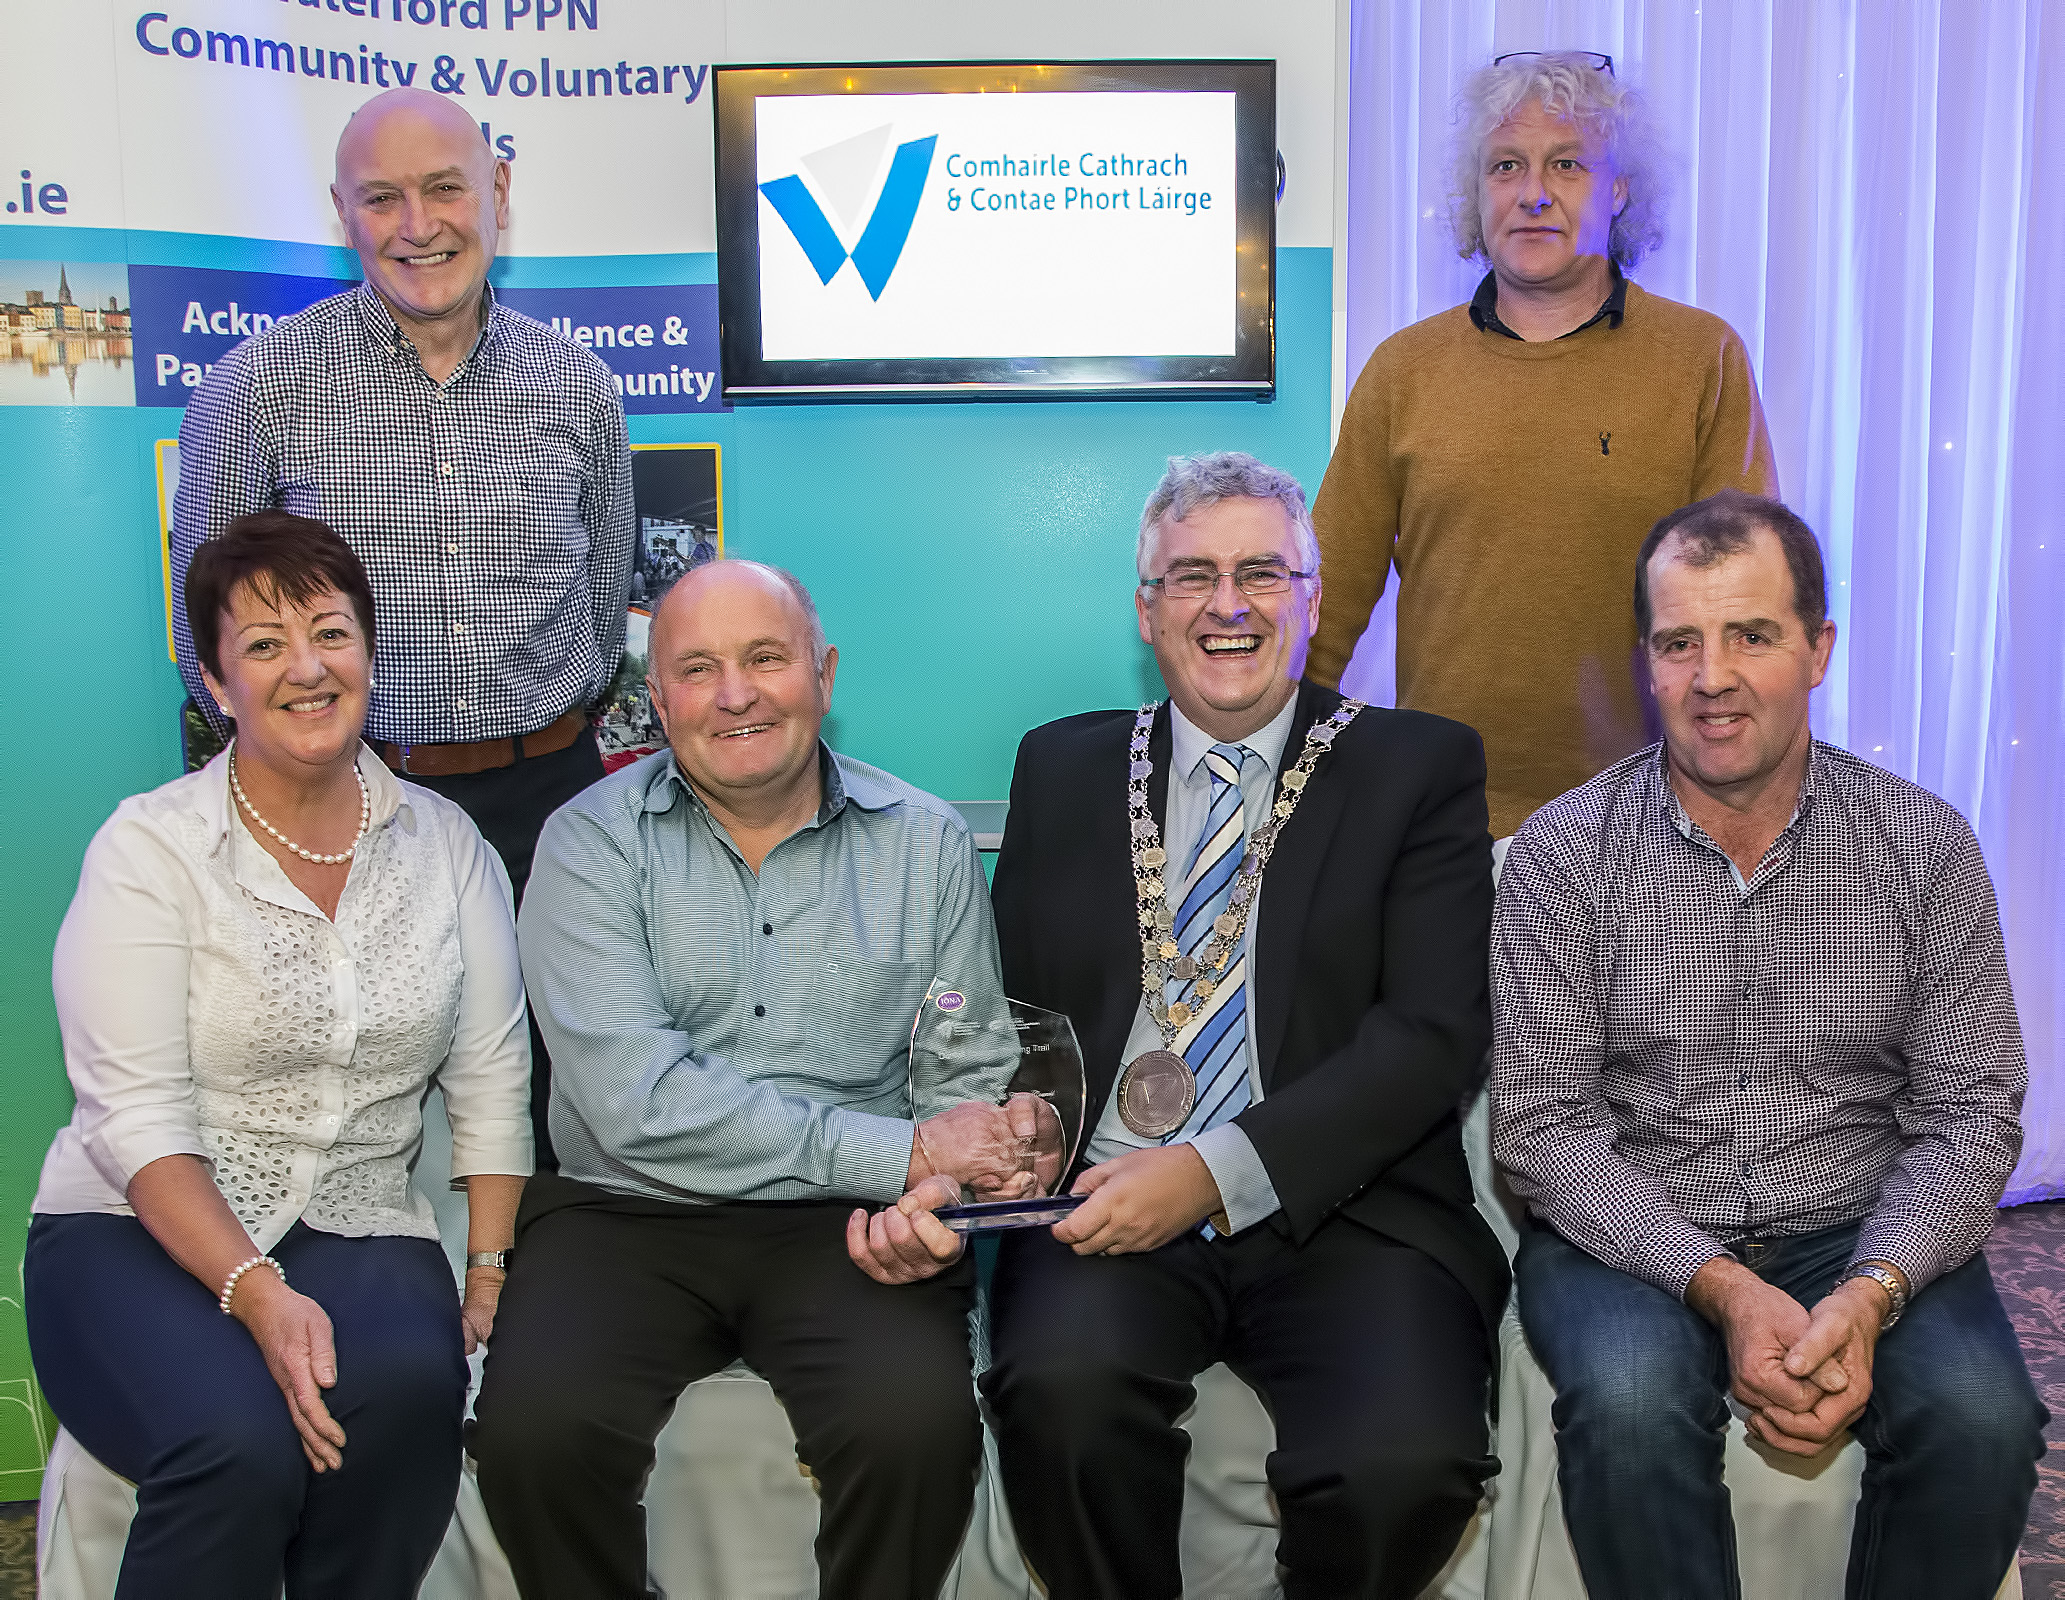 Waterford PPN Community & Voluntary Awards 2019, Mayors Award, Winners Dunhill Tourism Walking Trail Ltd. Photo includes: Cllr. John Pratt, Mayor of Waterford City & County Council, Willie Moore, Mike Walsh, Bernie Walsh, Eddie Murphy, Dunhill Tourism Walking Trail, and Garrett Wyse, Waterford PPN. Photos: Sean Byrne.